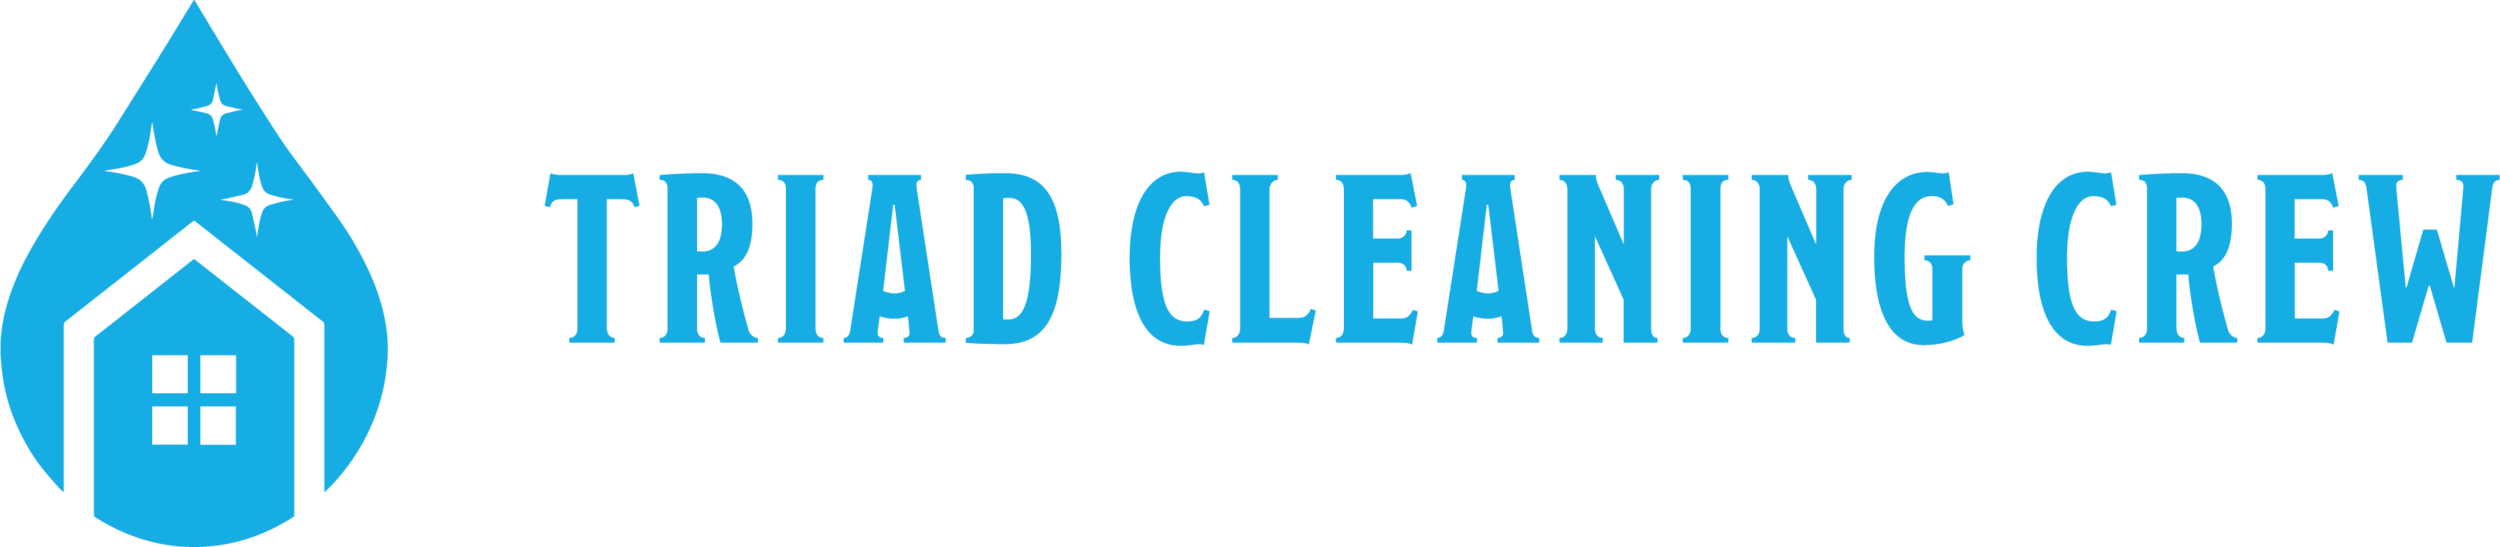 Triad Cleaning Crew Logo Design (Horizontal Treatment)